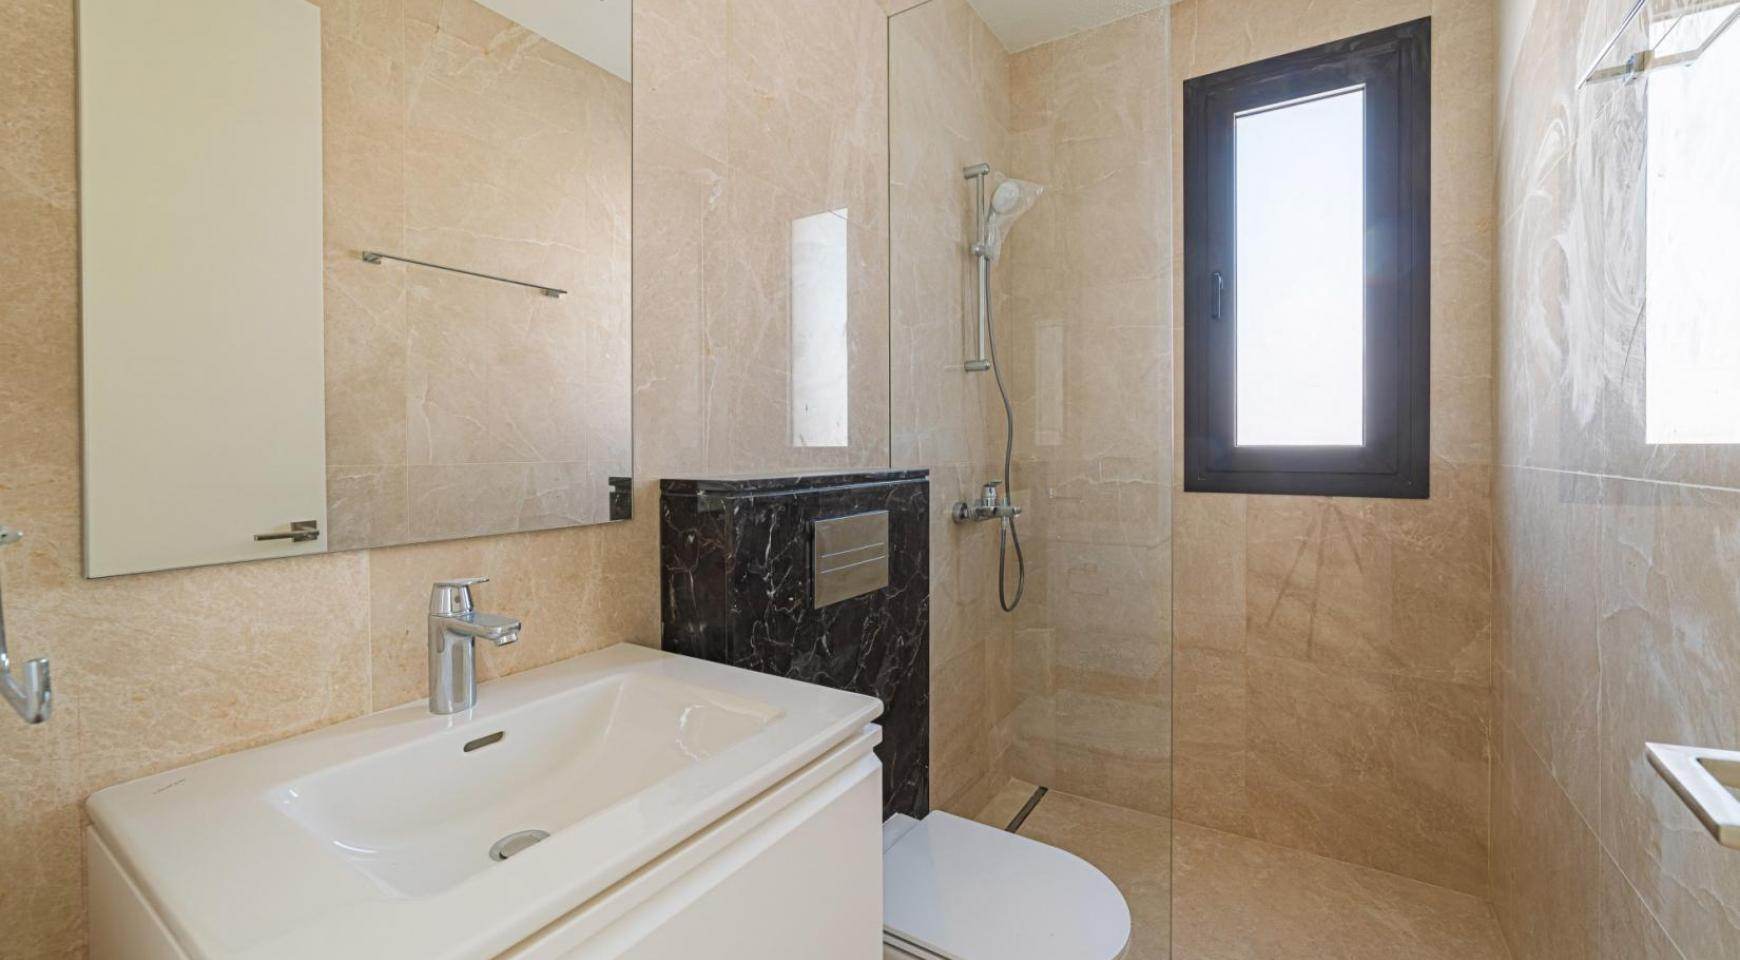 Hortensia Residence, Apt. 302. 2 Bedroom Apartment within a New Complex near the Sea  - 44